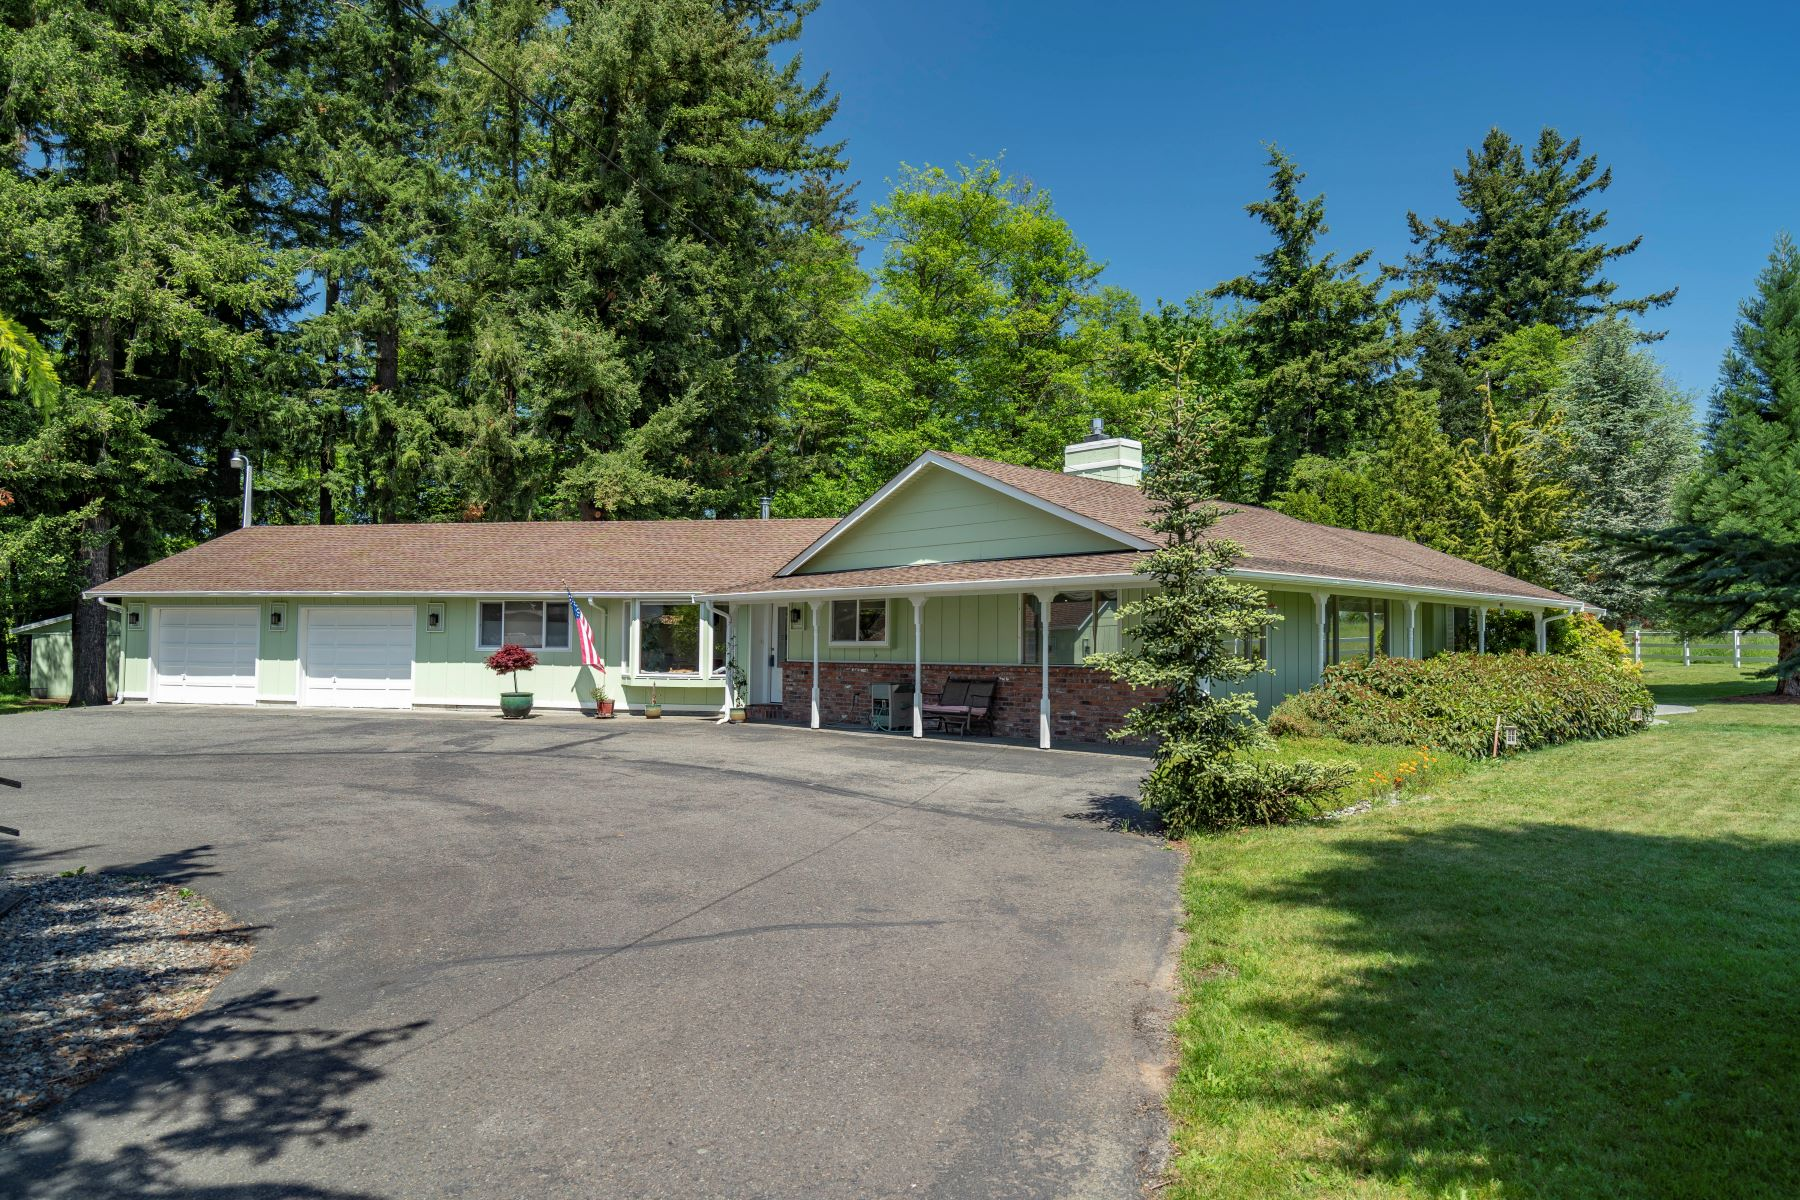 Single Family Homes for Sale at Beautifully Maintained Country Home 23102 SE 448th Street Enumclaw, Washington 98022 United States